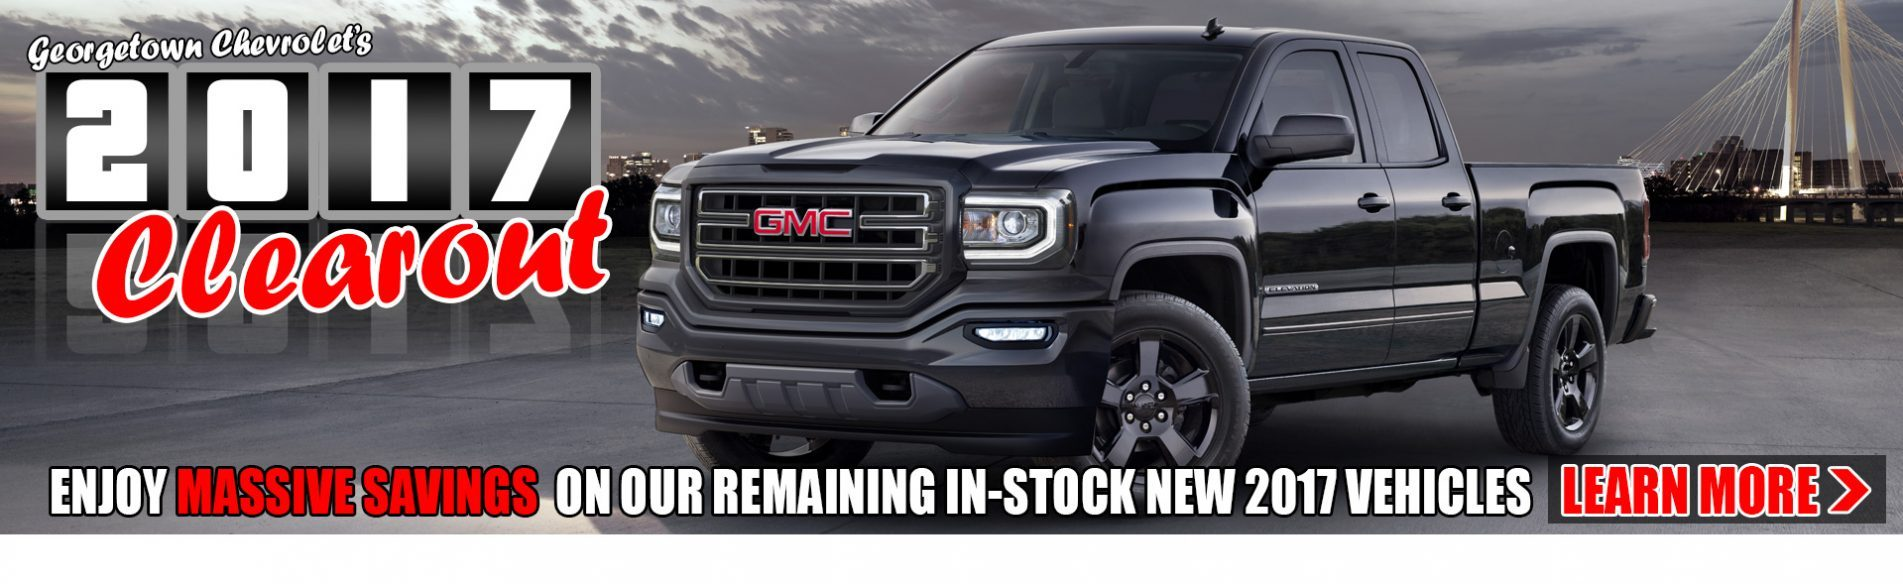 Save big on remaining 2017 Chevrolet, Buick and GMC vehicles from Georgetown Chevrolet